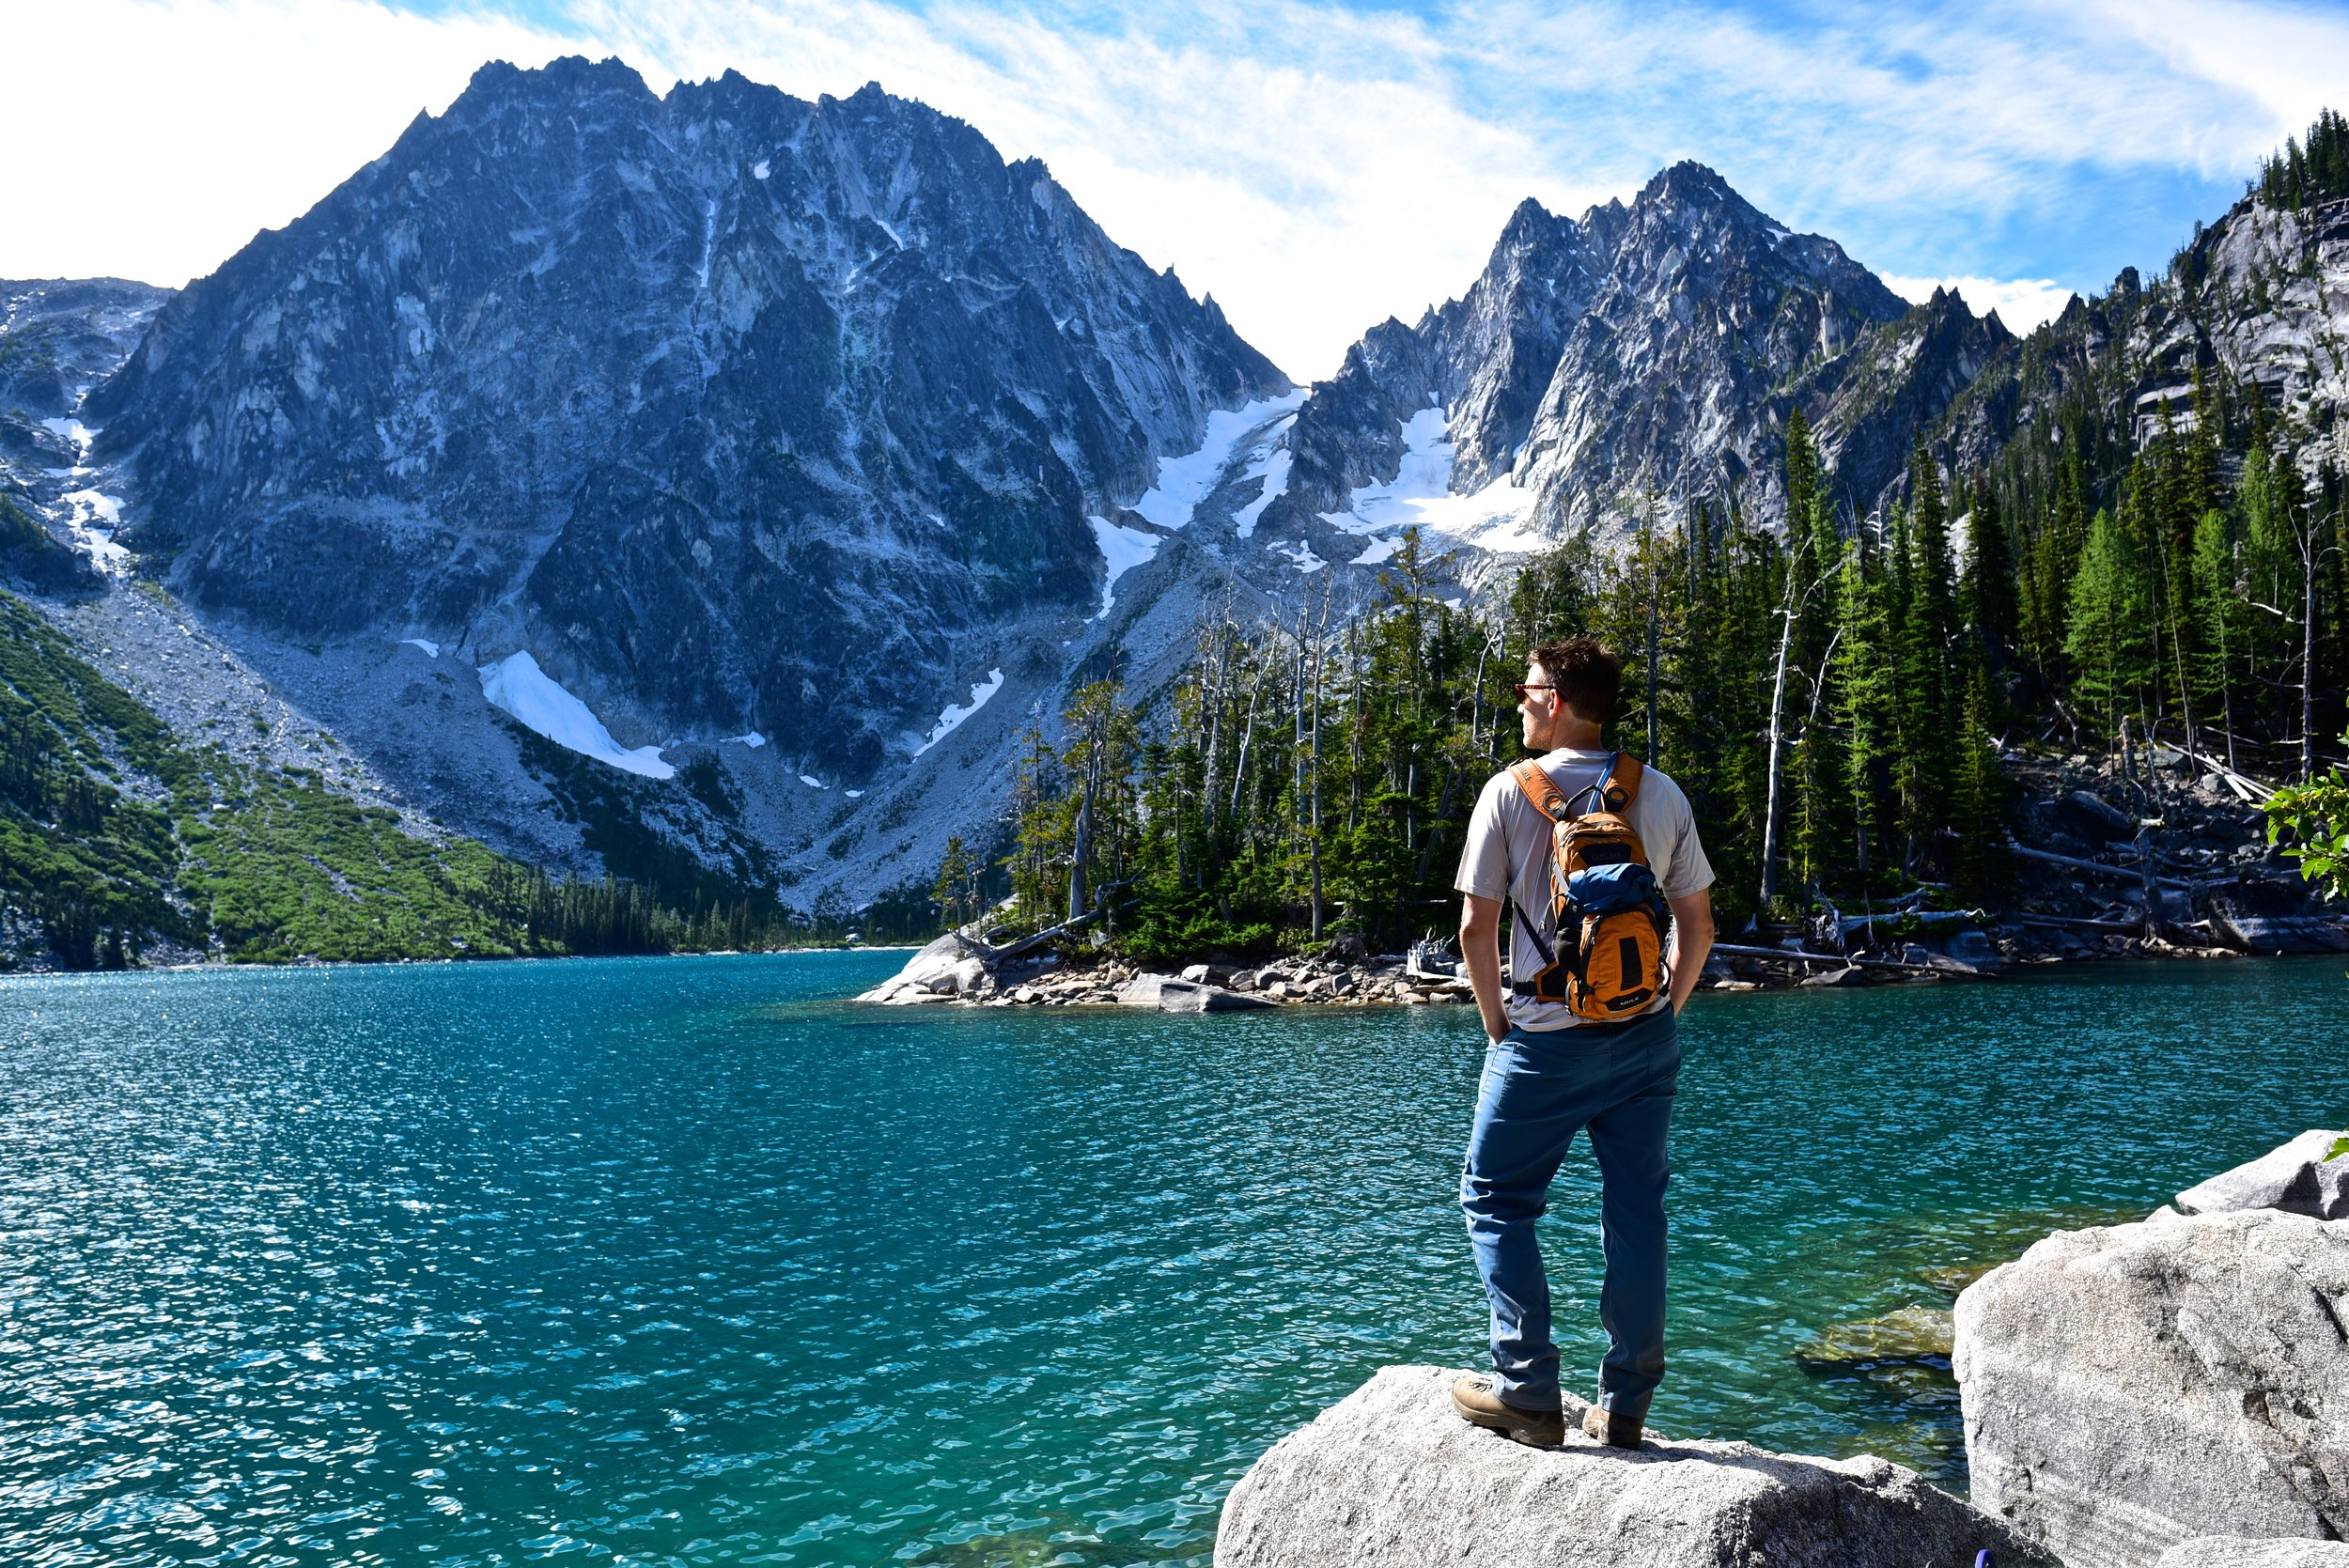 Hike to Colchuck Lake in the Enchantments